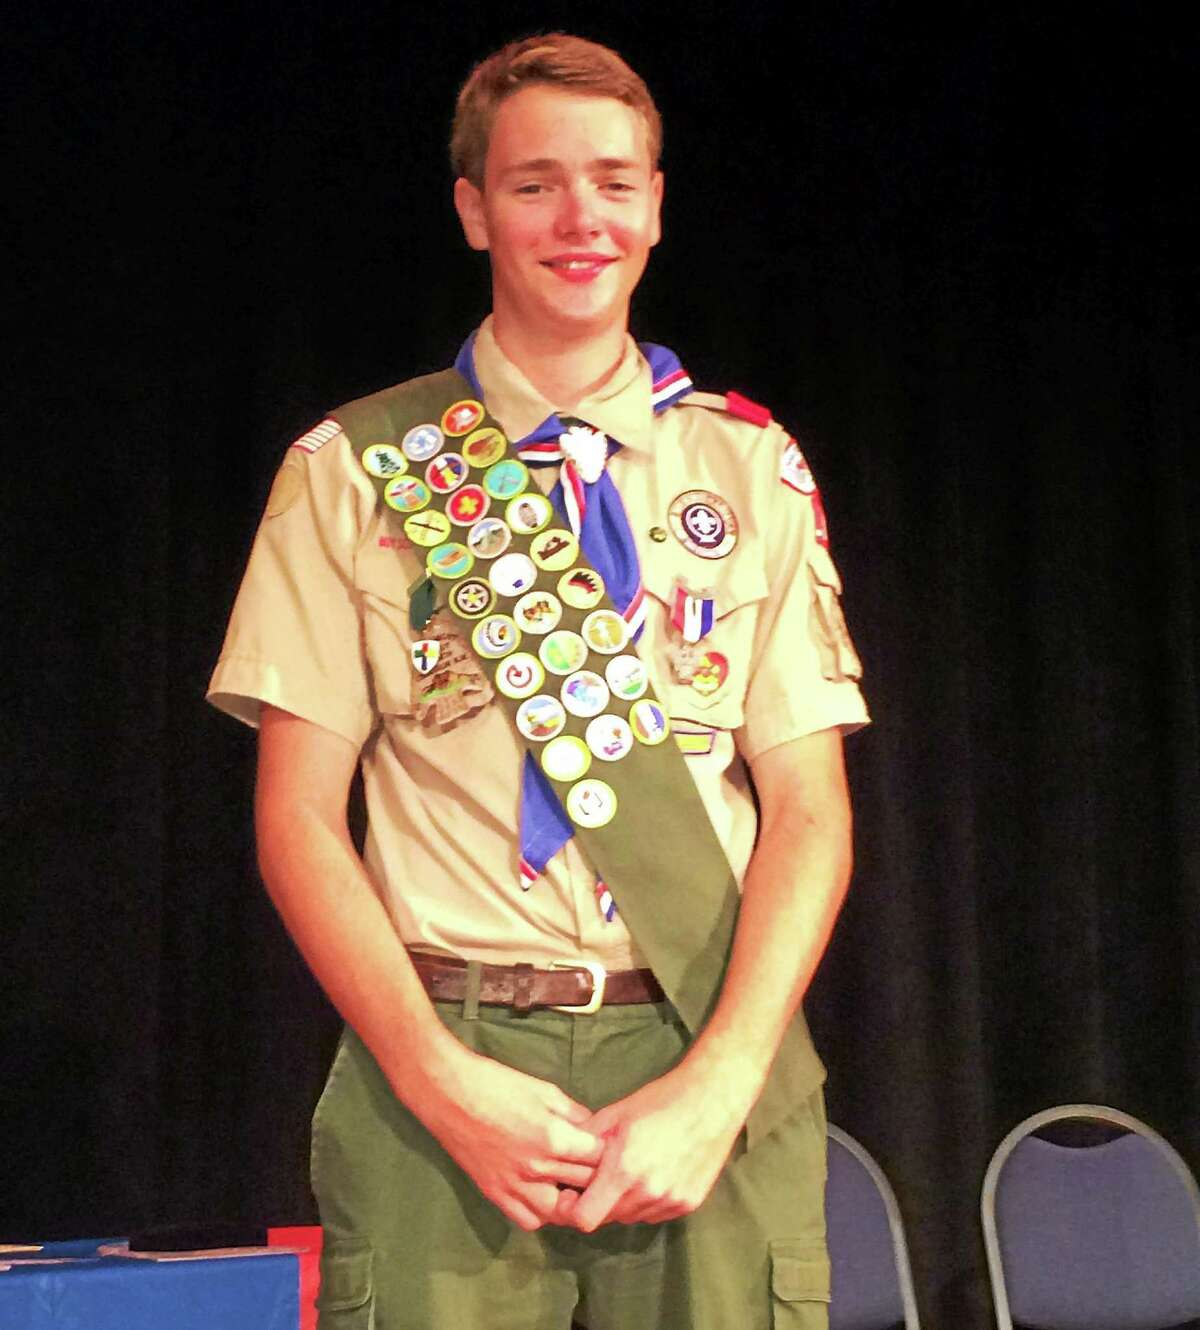 Chester/Deep River Boy Scout Troop 13's newest Eagle Scout is Bobby Neil Hamblett.